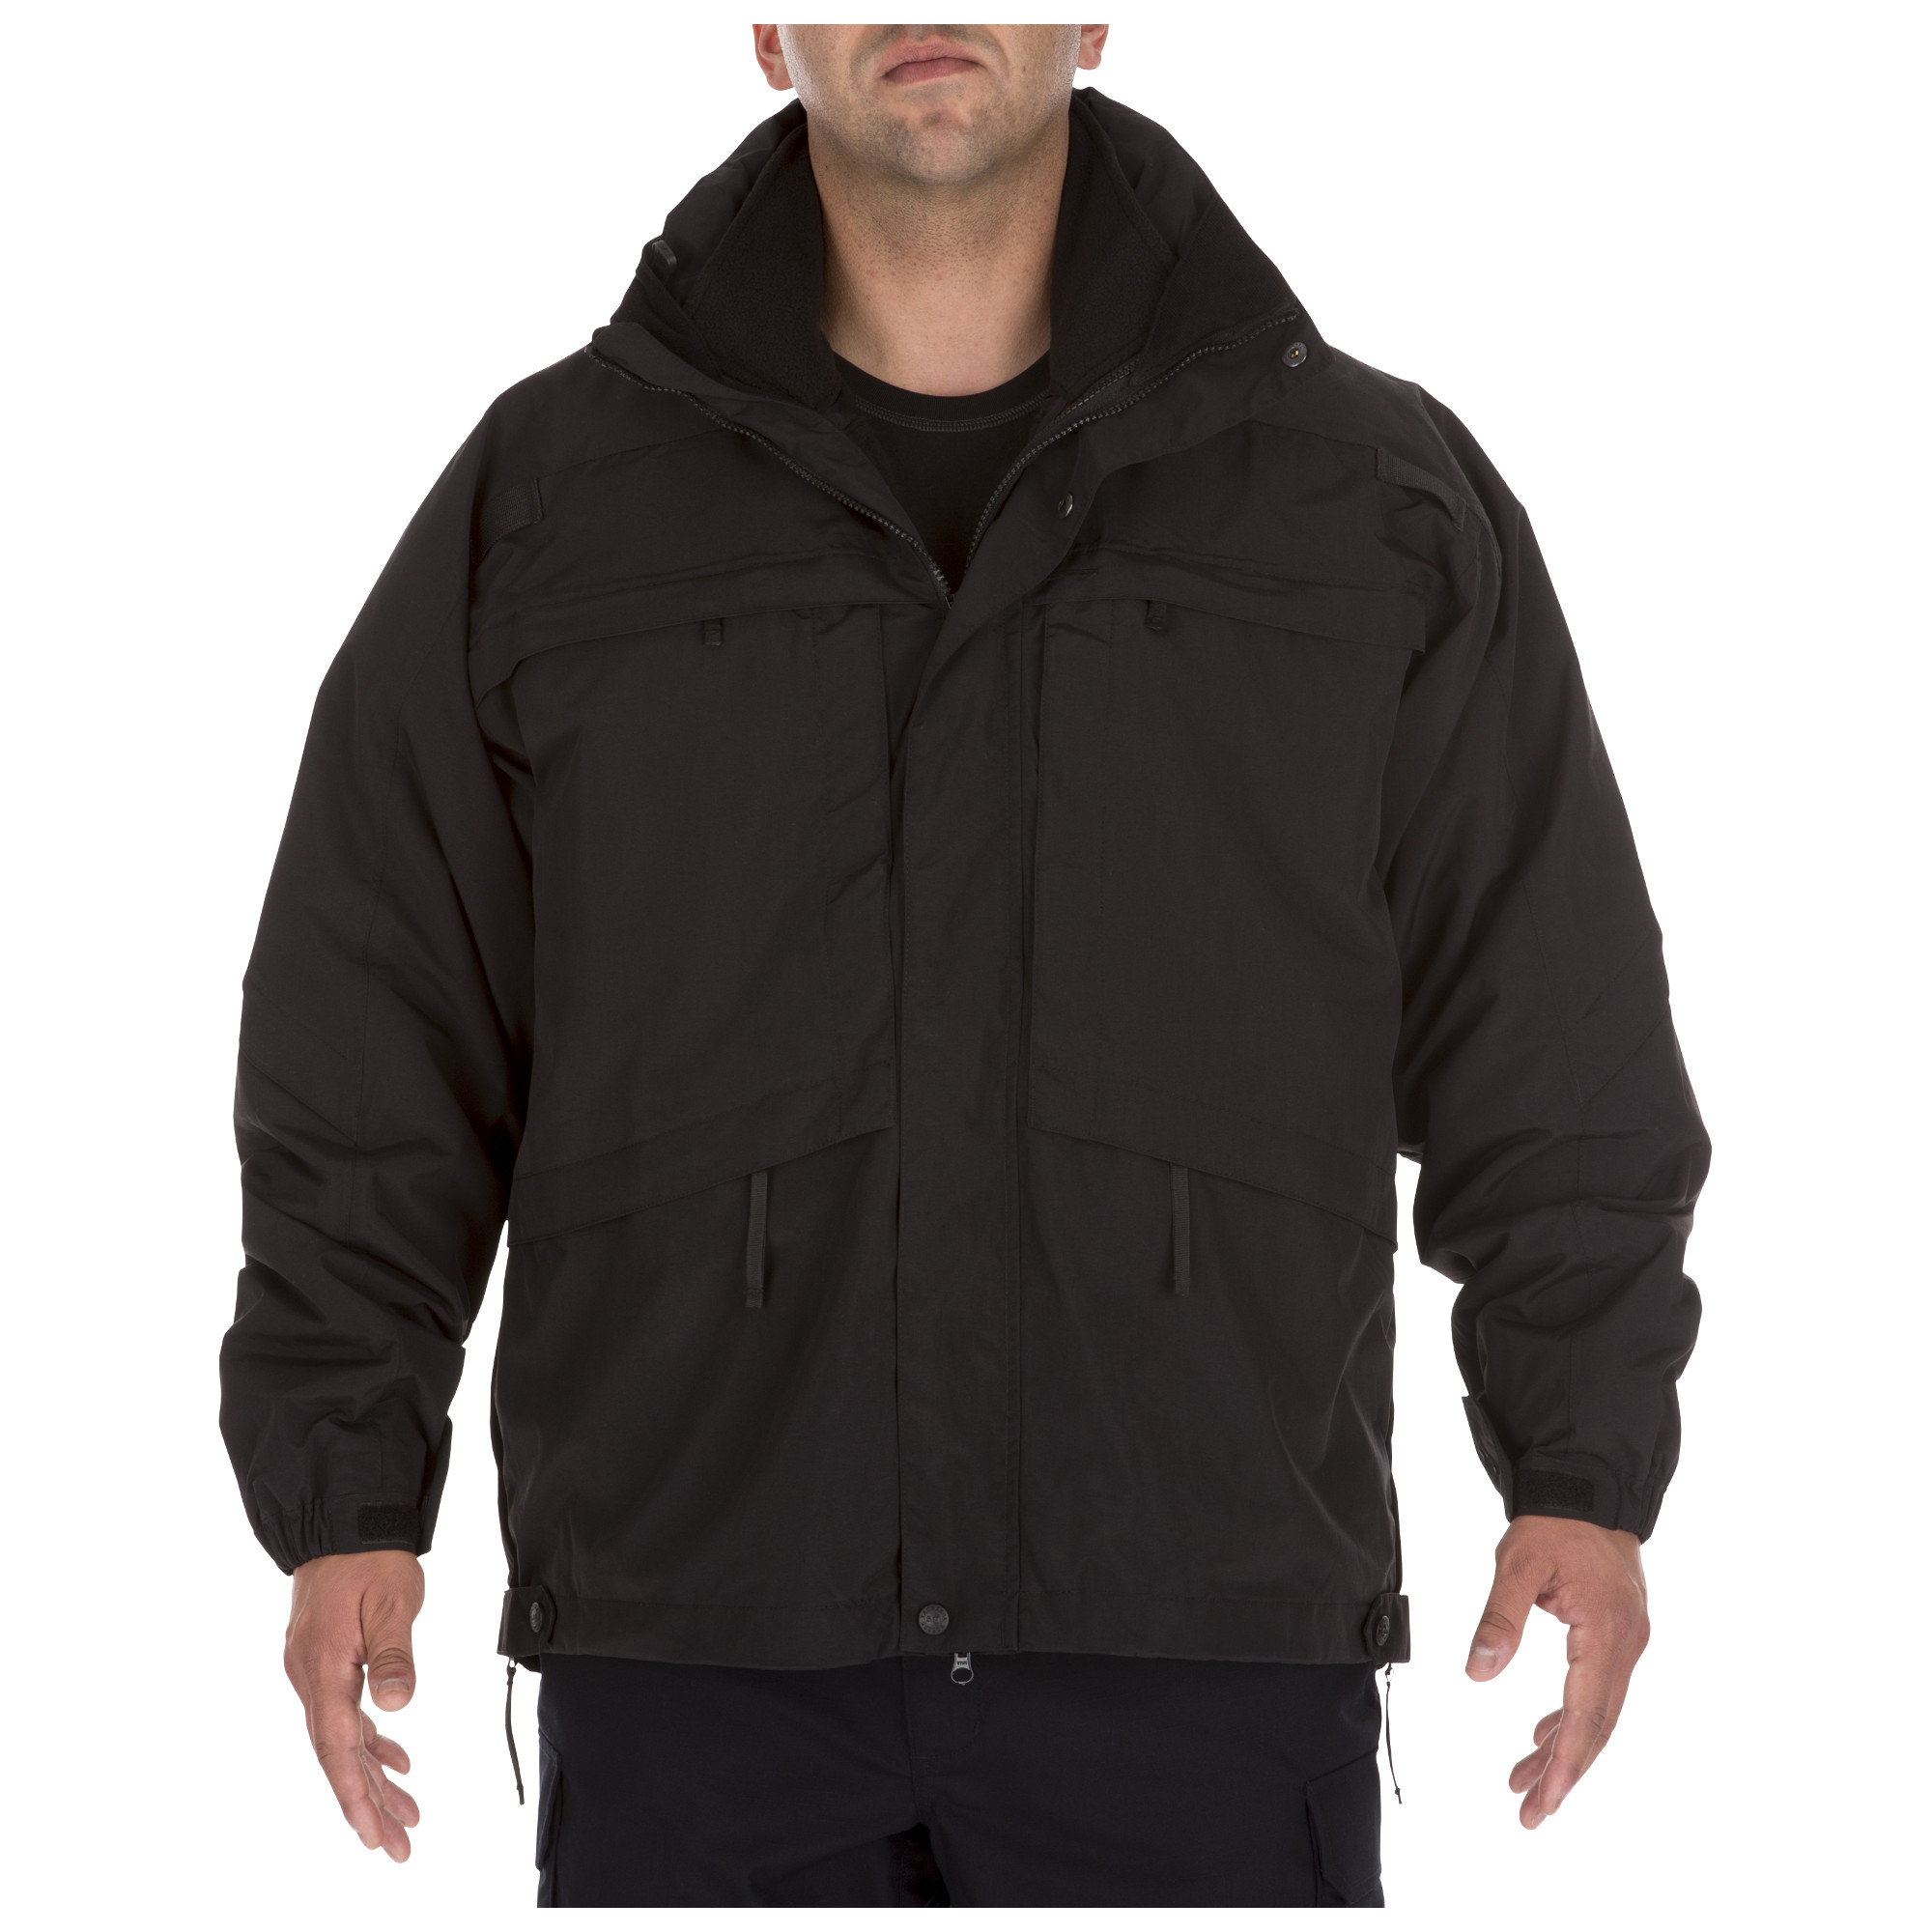 6586549bc1 5.11 Tactical 3-in-1 Parka - 5.11 Tactical